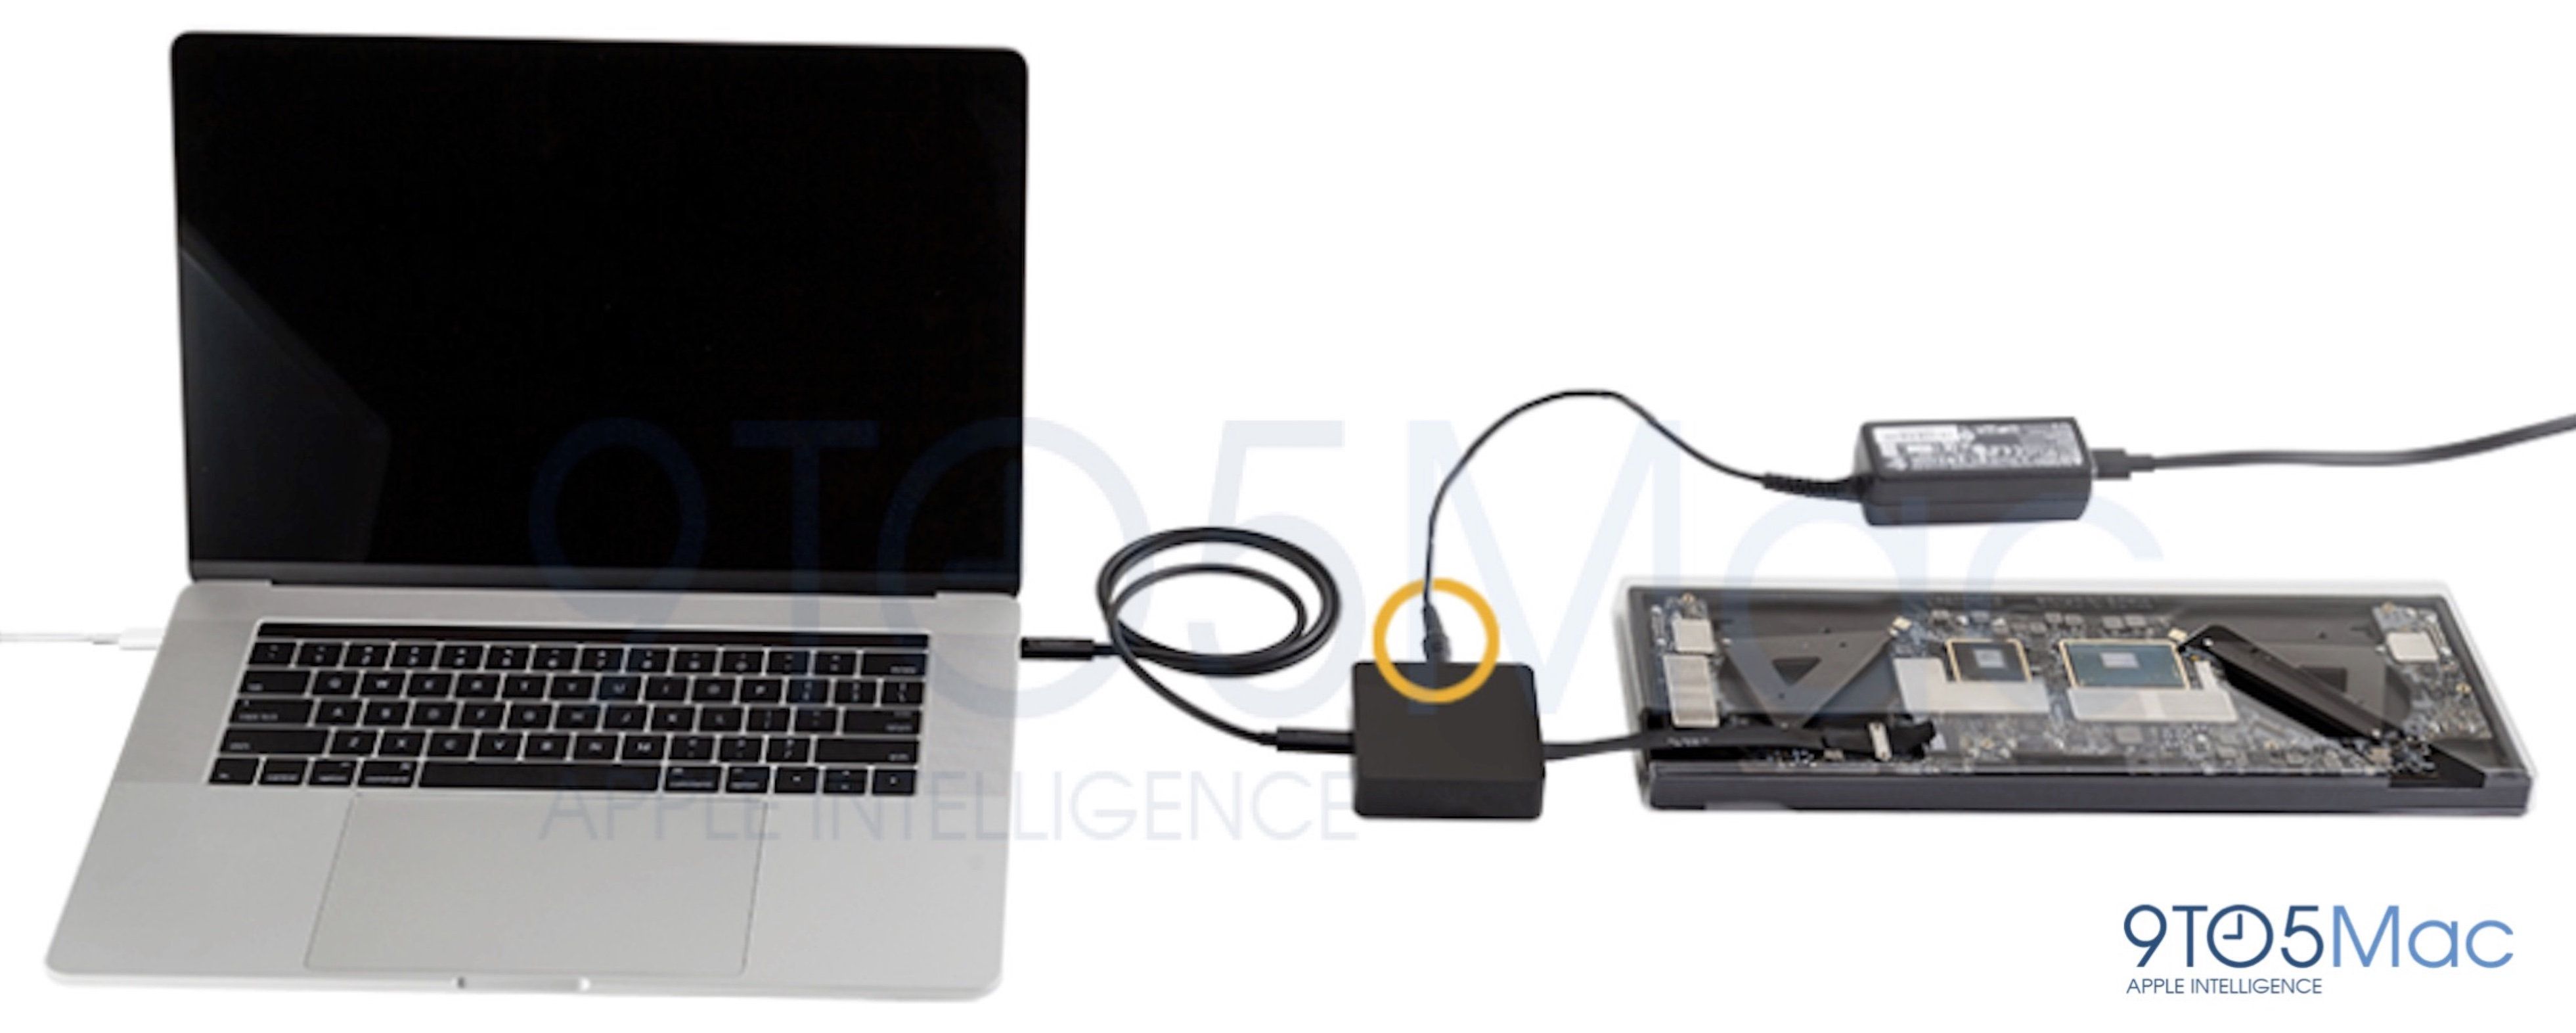 MacBook Pro SSD rescue tool image 001